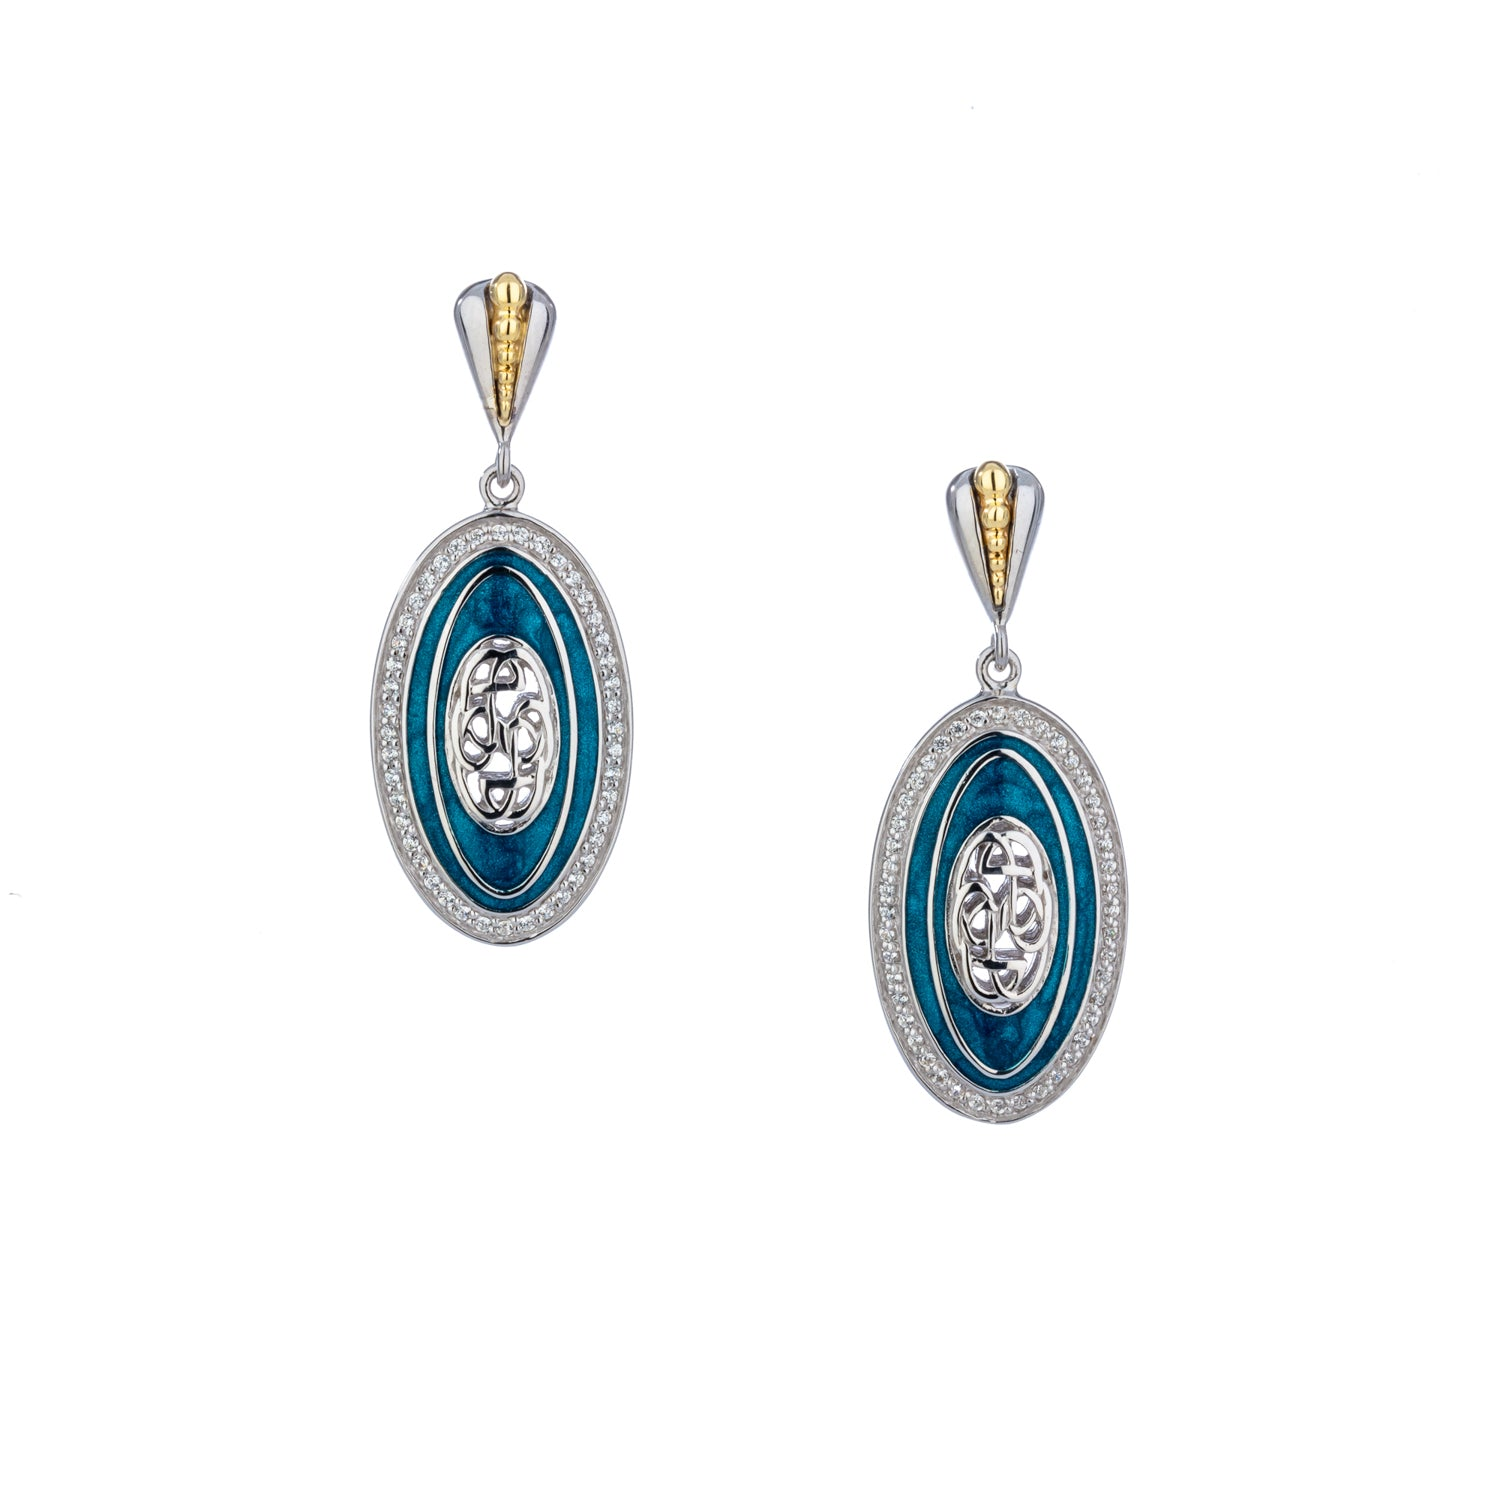 Earrings 10k Sky Blue Enamel CZ Path of Life Post Earrings from welch and company jewelers near syracuse ny